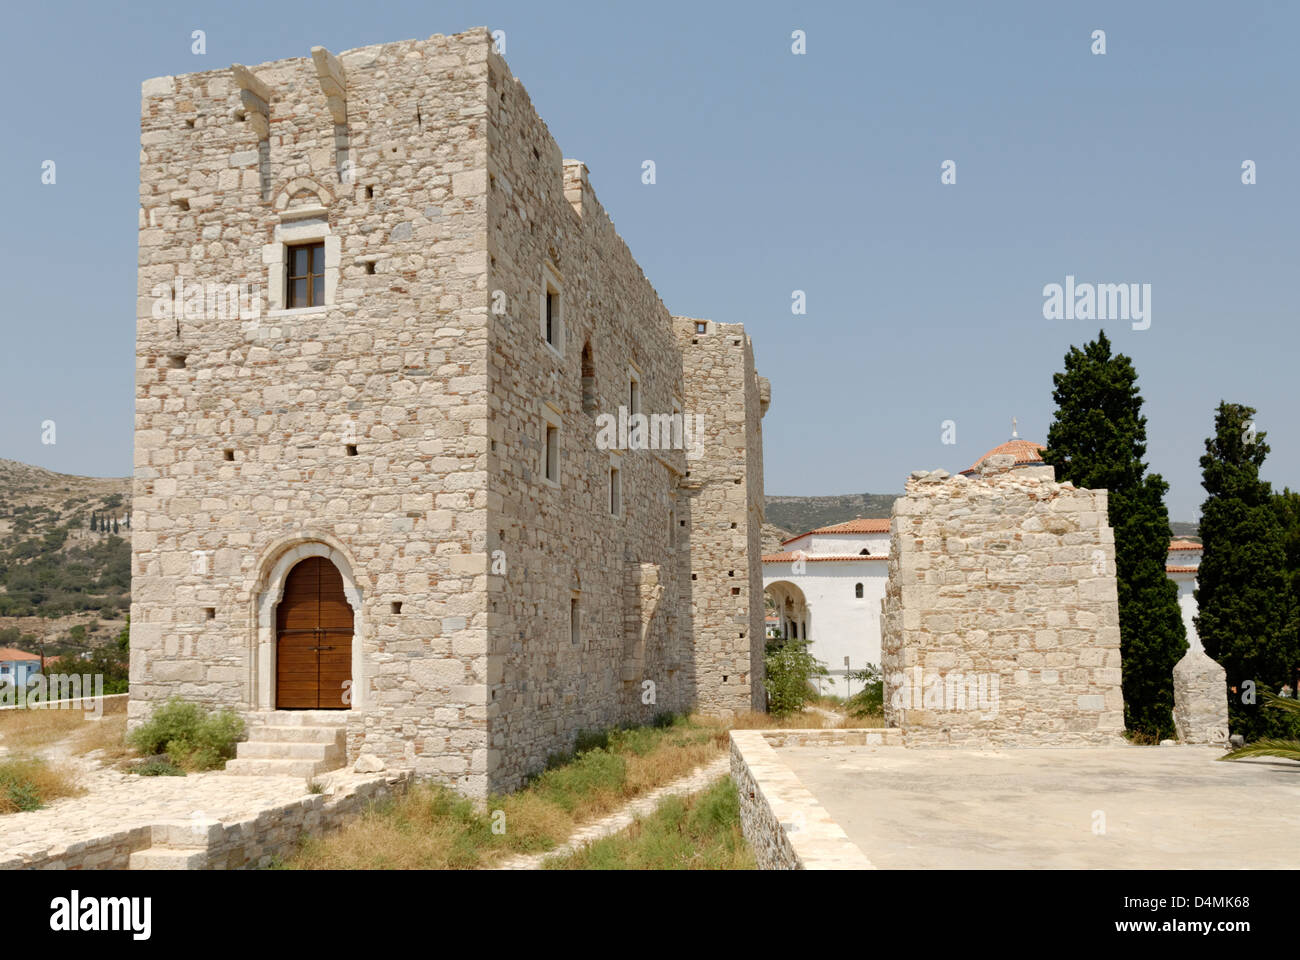 Greece. Samos. Pythagoreio. The tower of the Byzantine castle Kastro, which served the Struggle for independence. Stock Photo